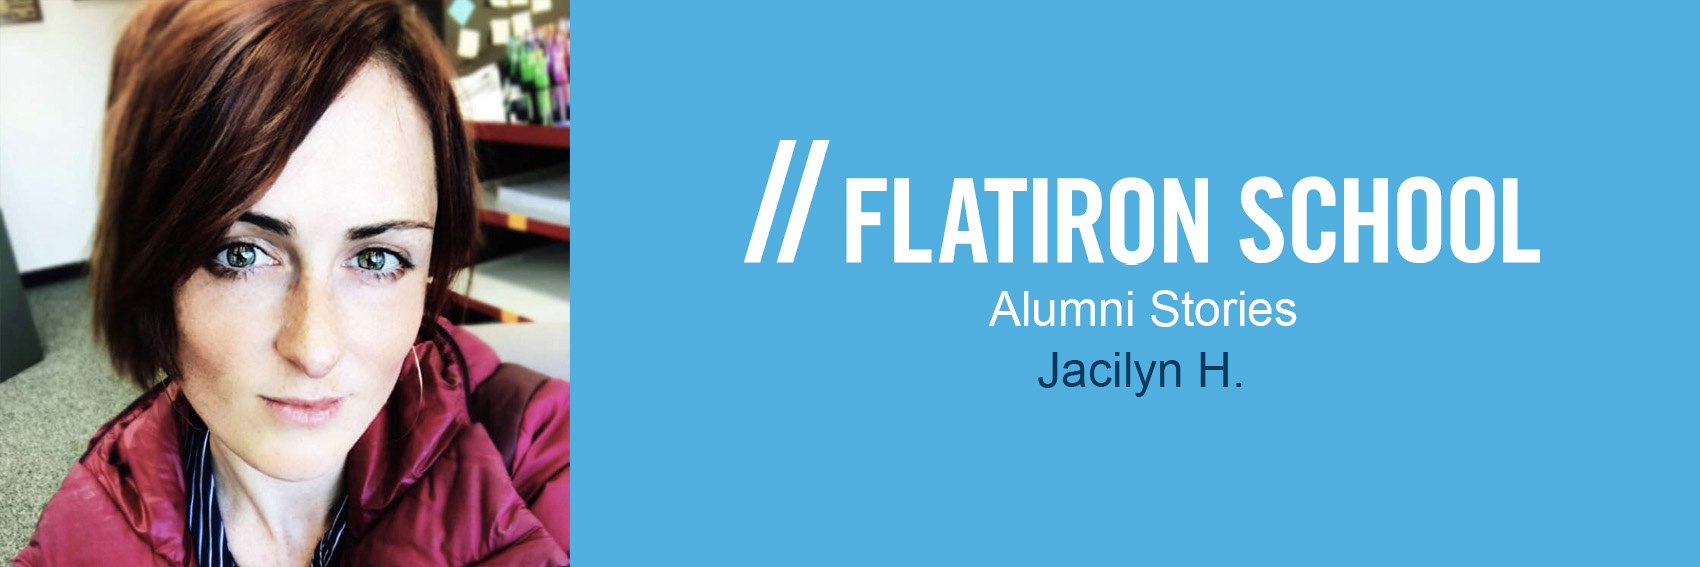 Blog post image: jc-alumni-banner.jpg